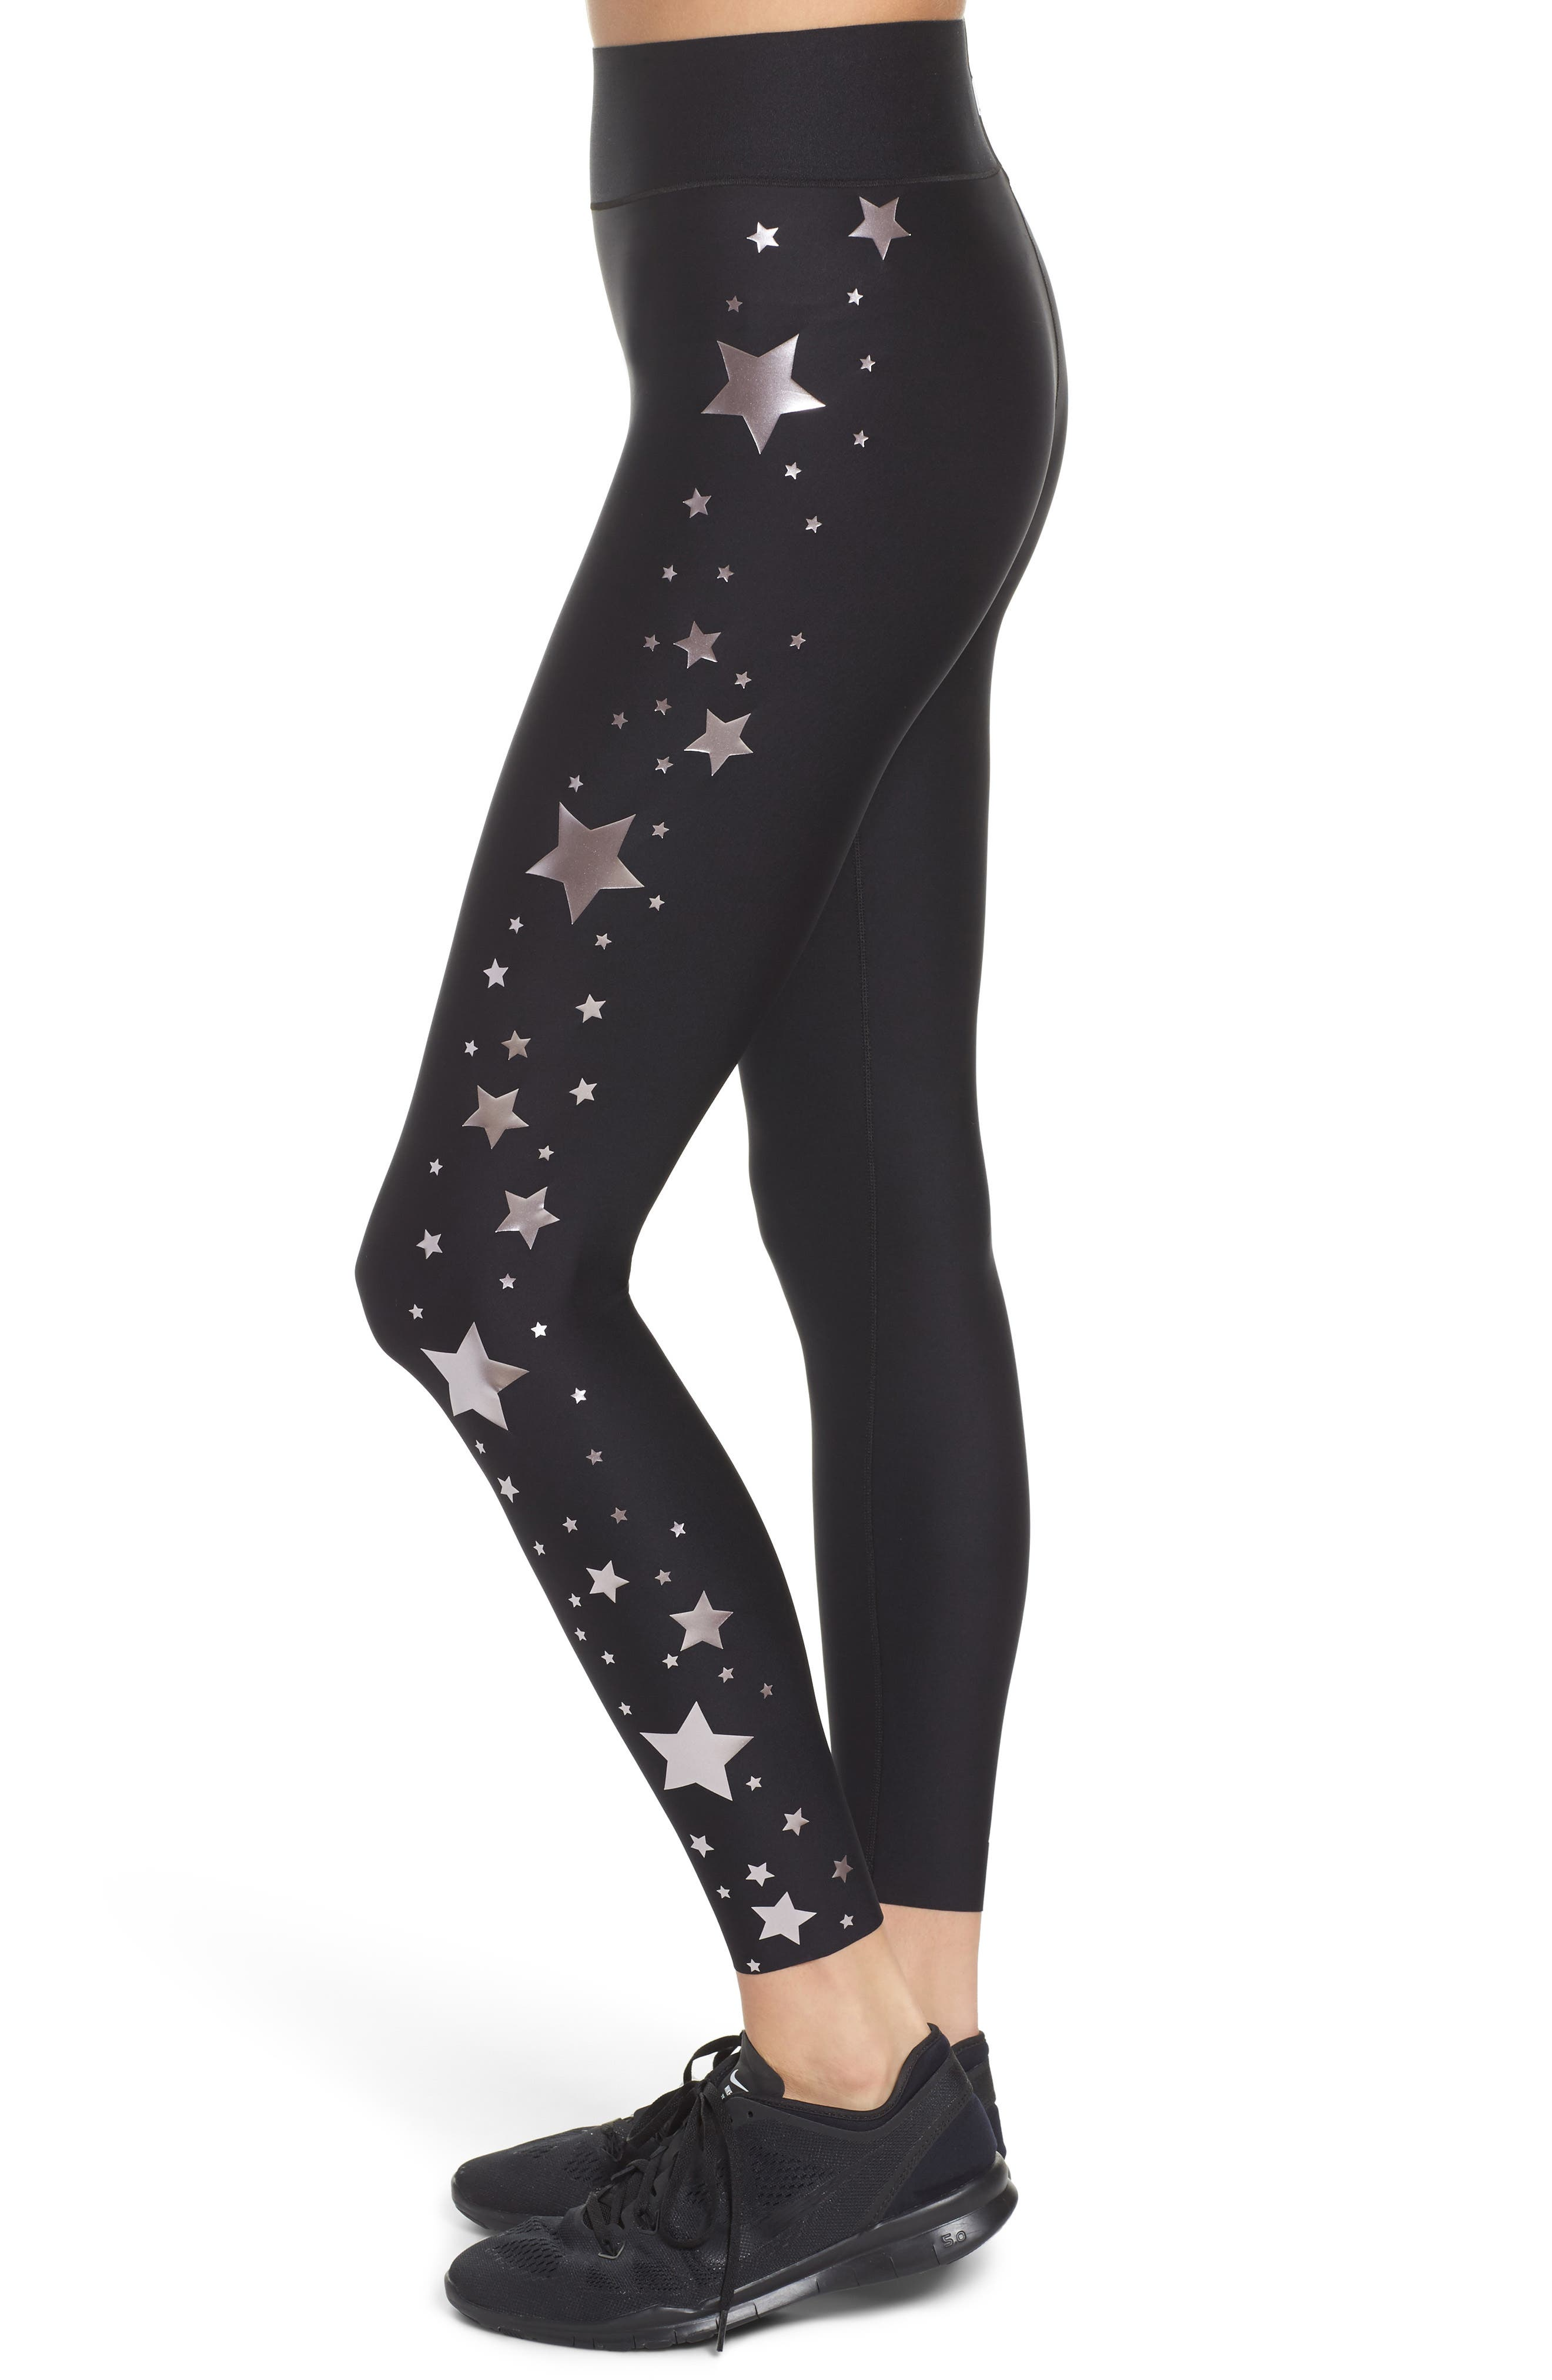 Lux Stellar High Waist Leggings,                             Alternate thumbnail 4, color,                             Nero Rose